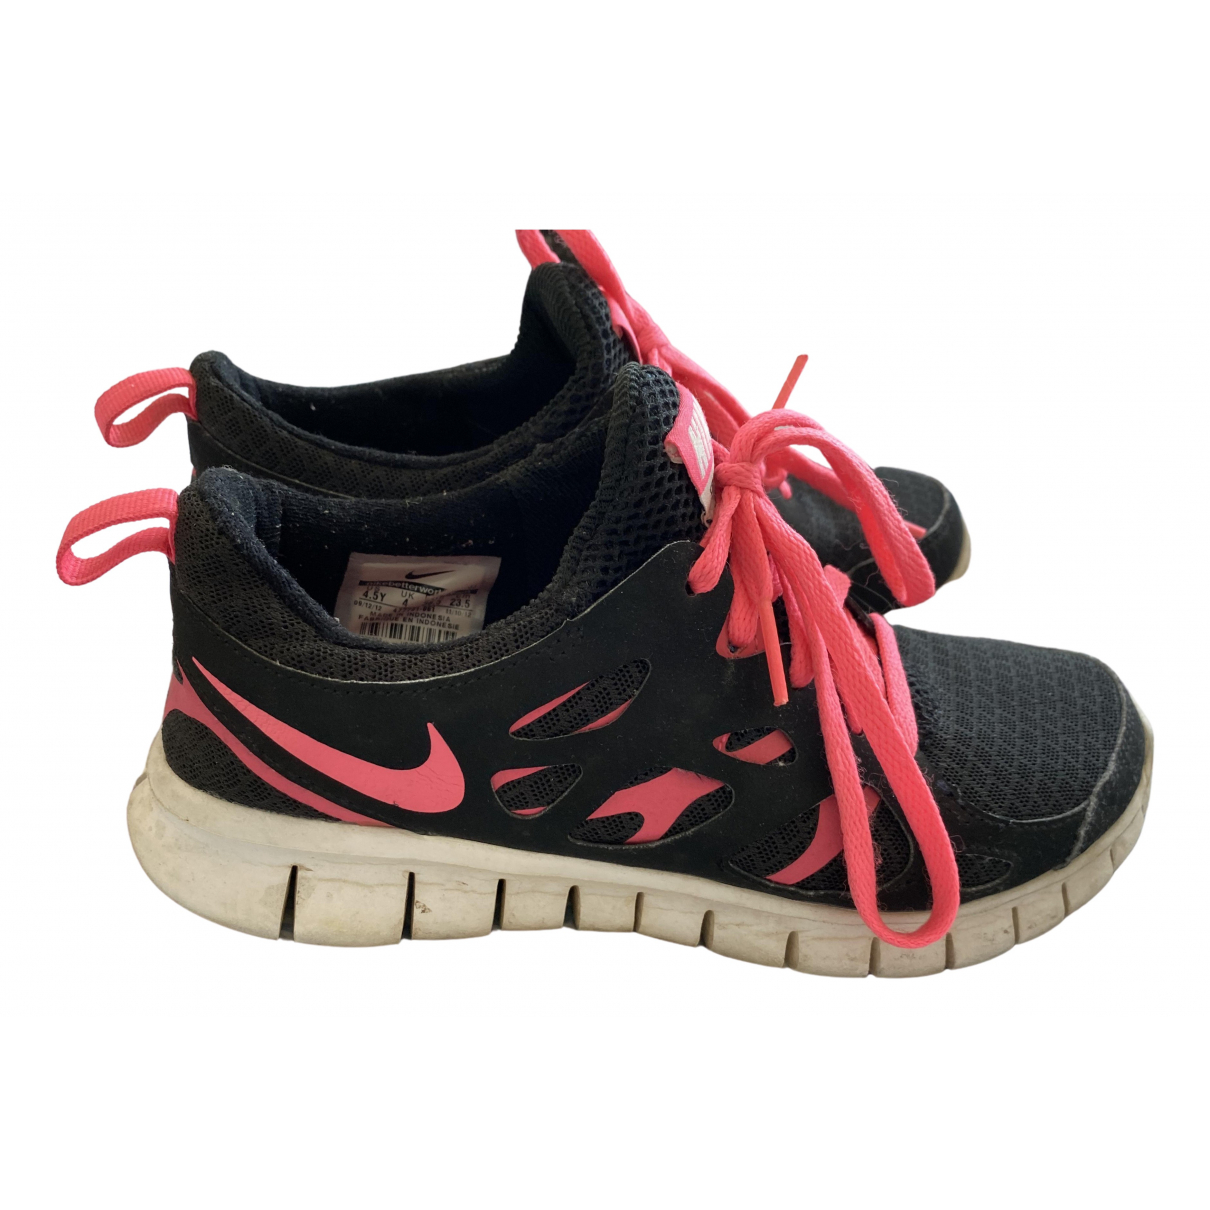 Nike Free Run Black Trainers for Women 36.5 EU